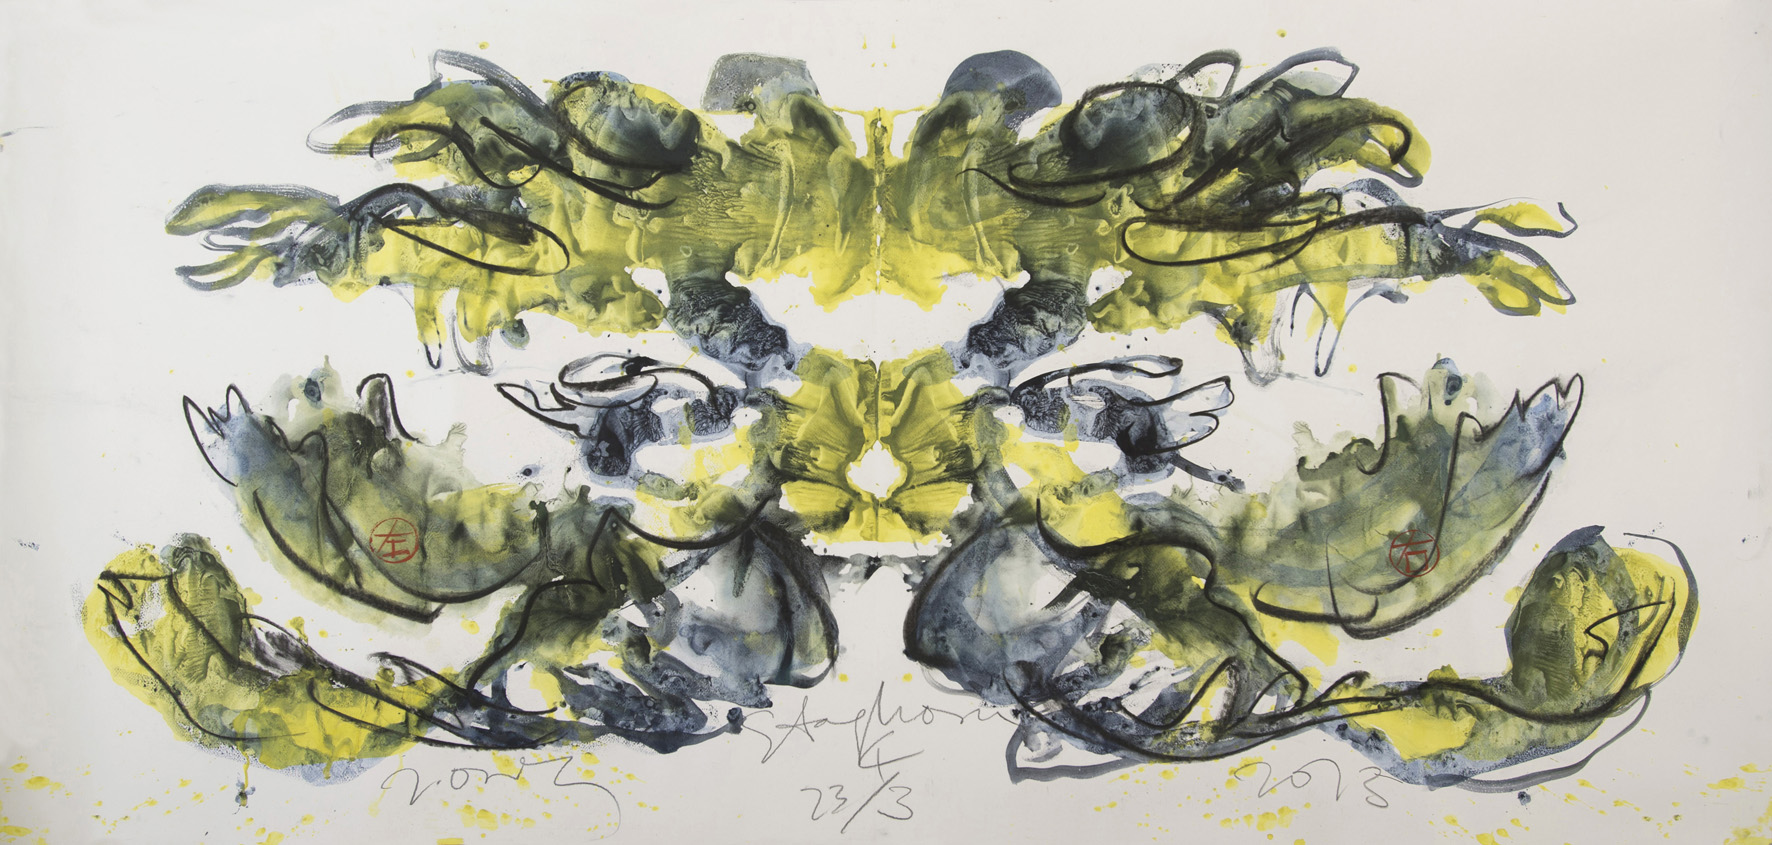 Jimmy Ong  Staghorn 4  2013 Charcoal and color pigment on paper H76.2 x W151.5 cm